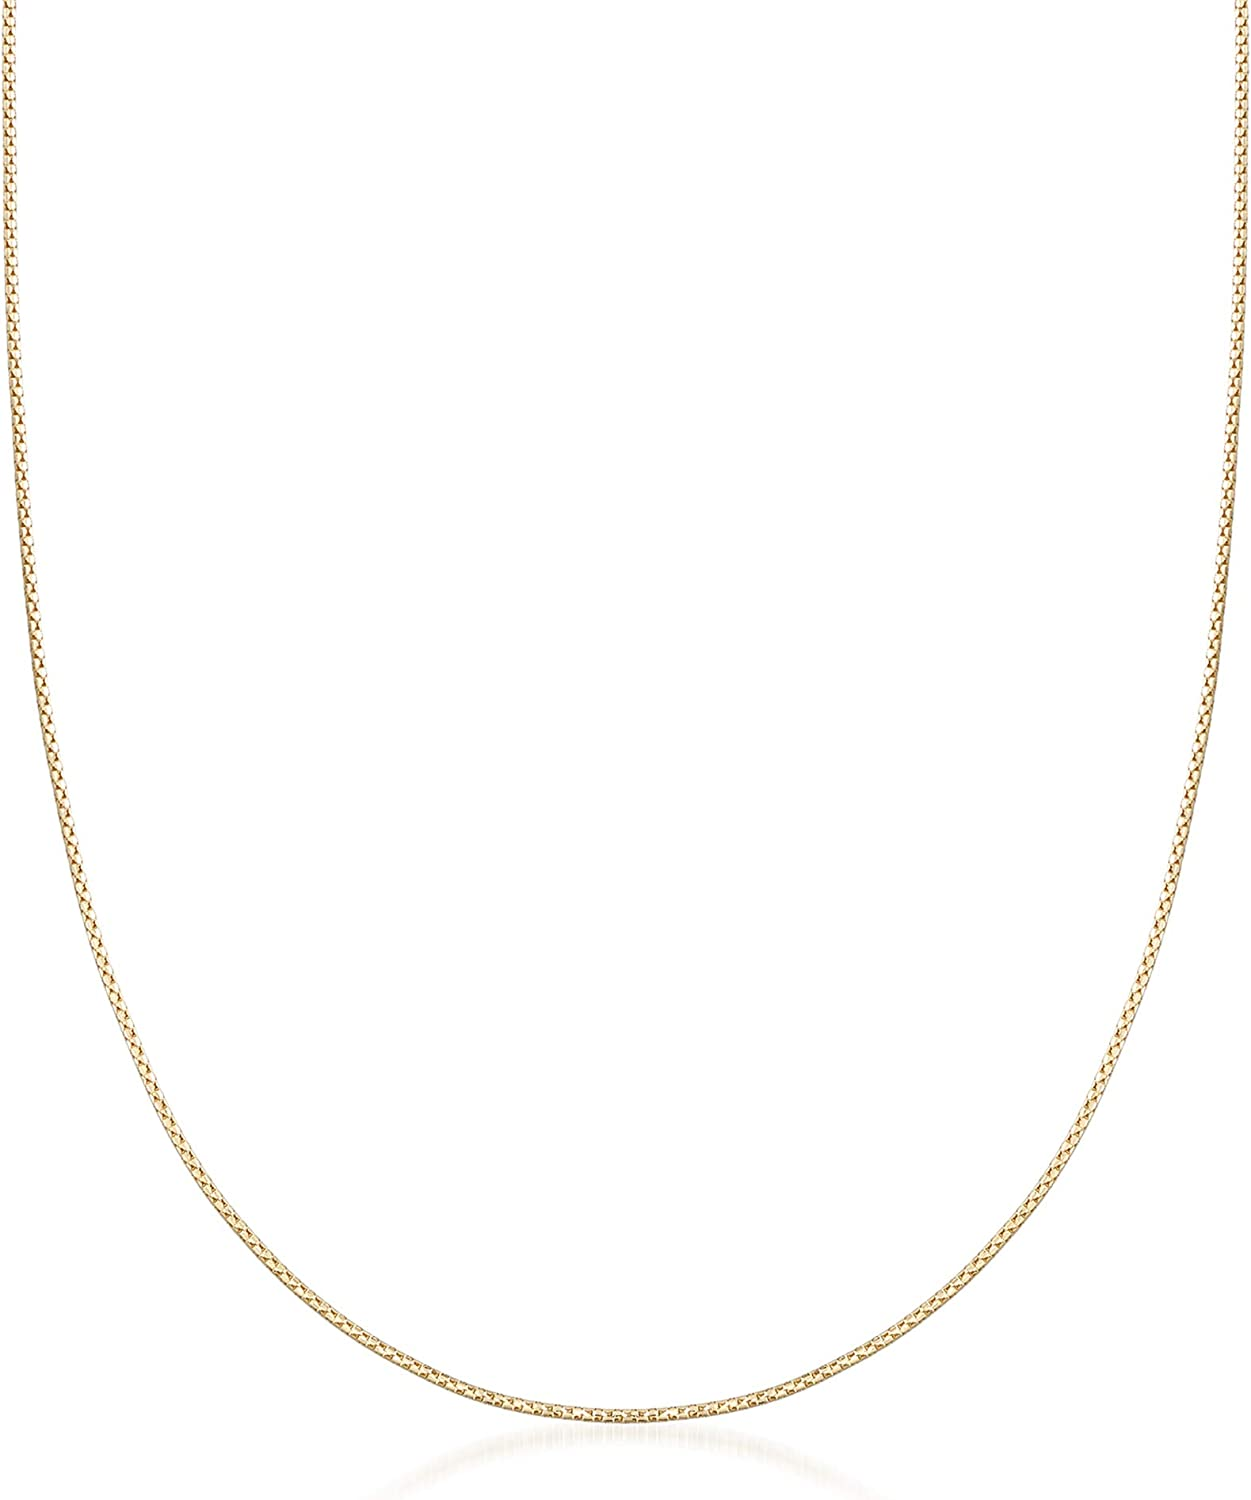 Ross-Simons 1.2mm 14kt Super sale Yellow Gold Popcorn Neck Max 62% OFF Adjustable Chain